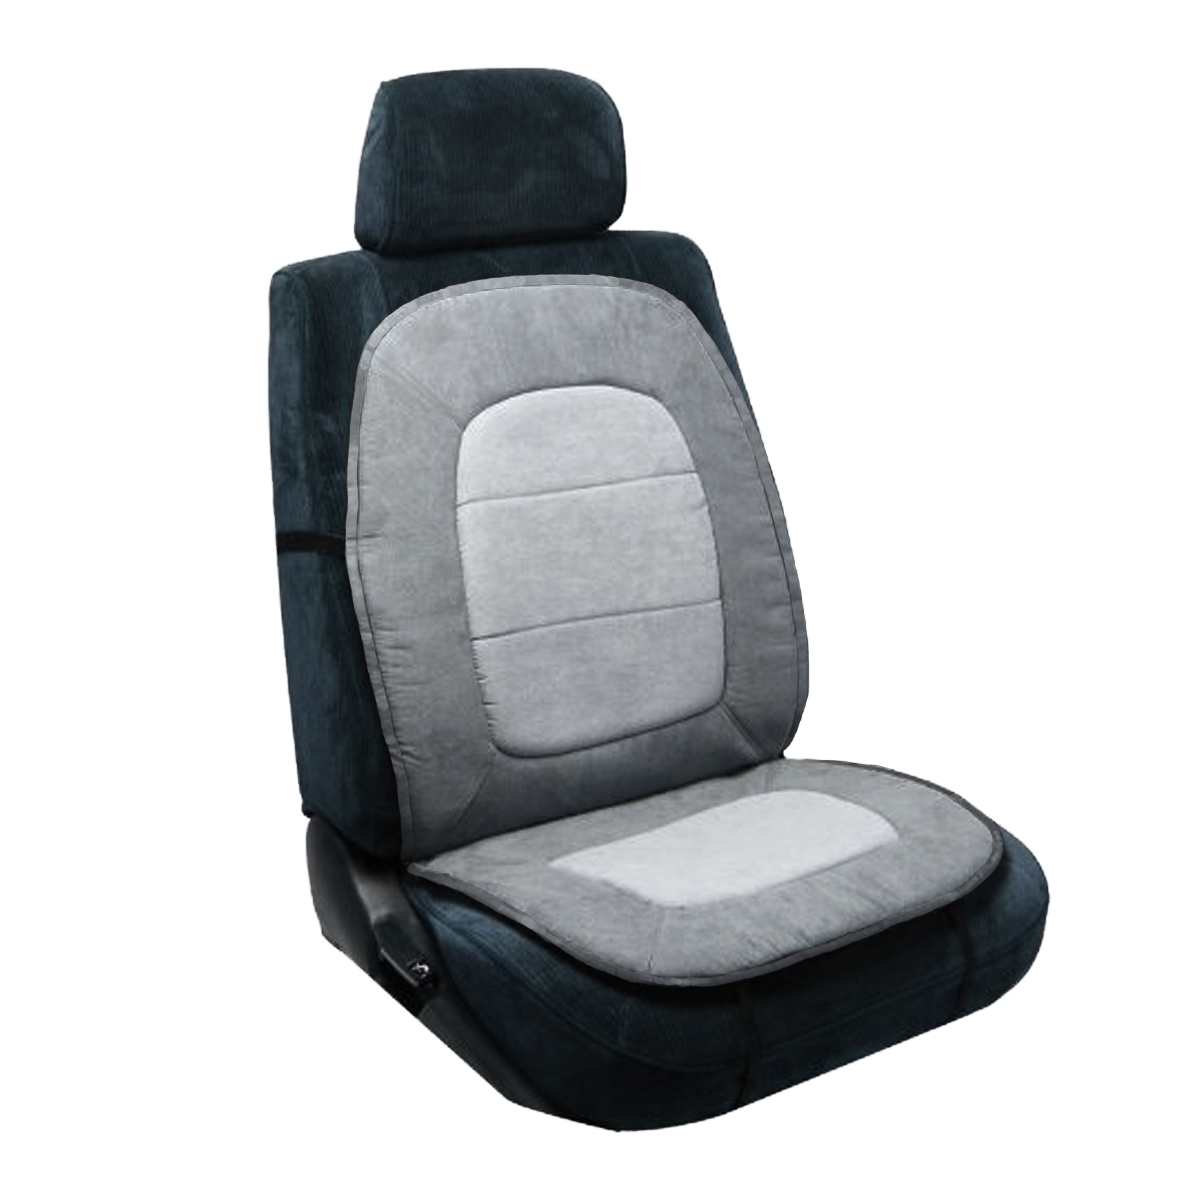 Pilot Automotive Universal Orthopedic Comfort Car Seat Cushion Gray Strap Home